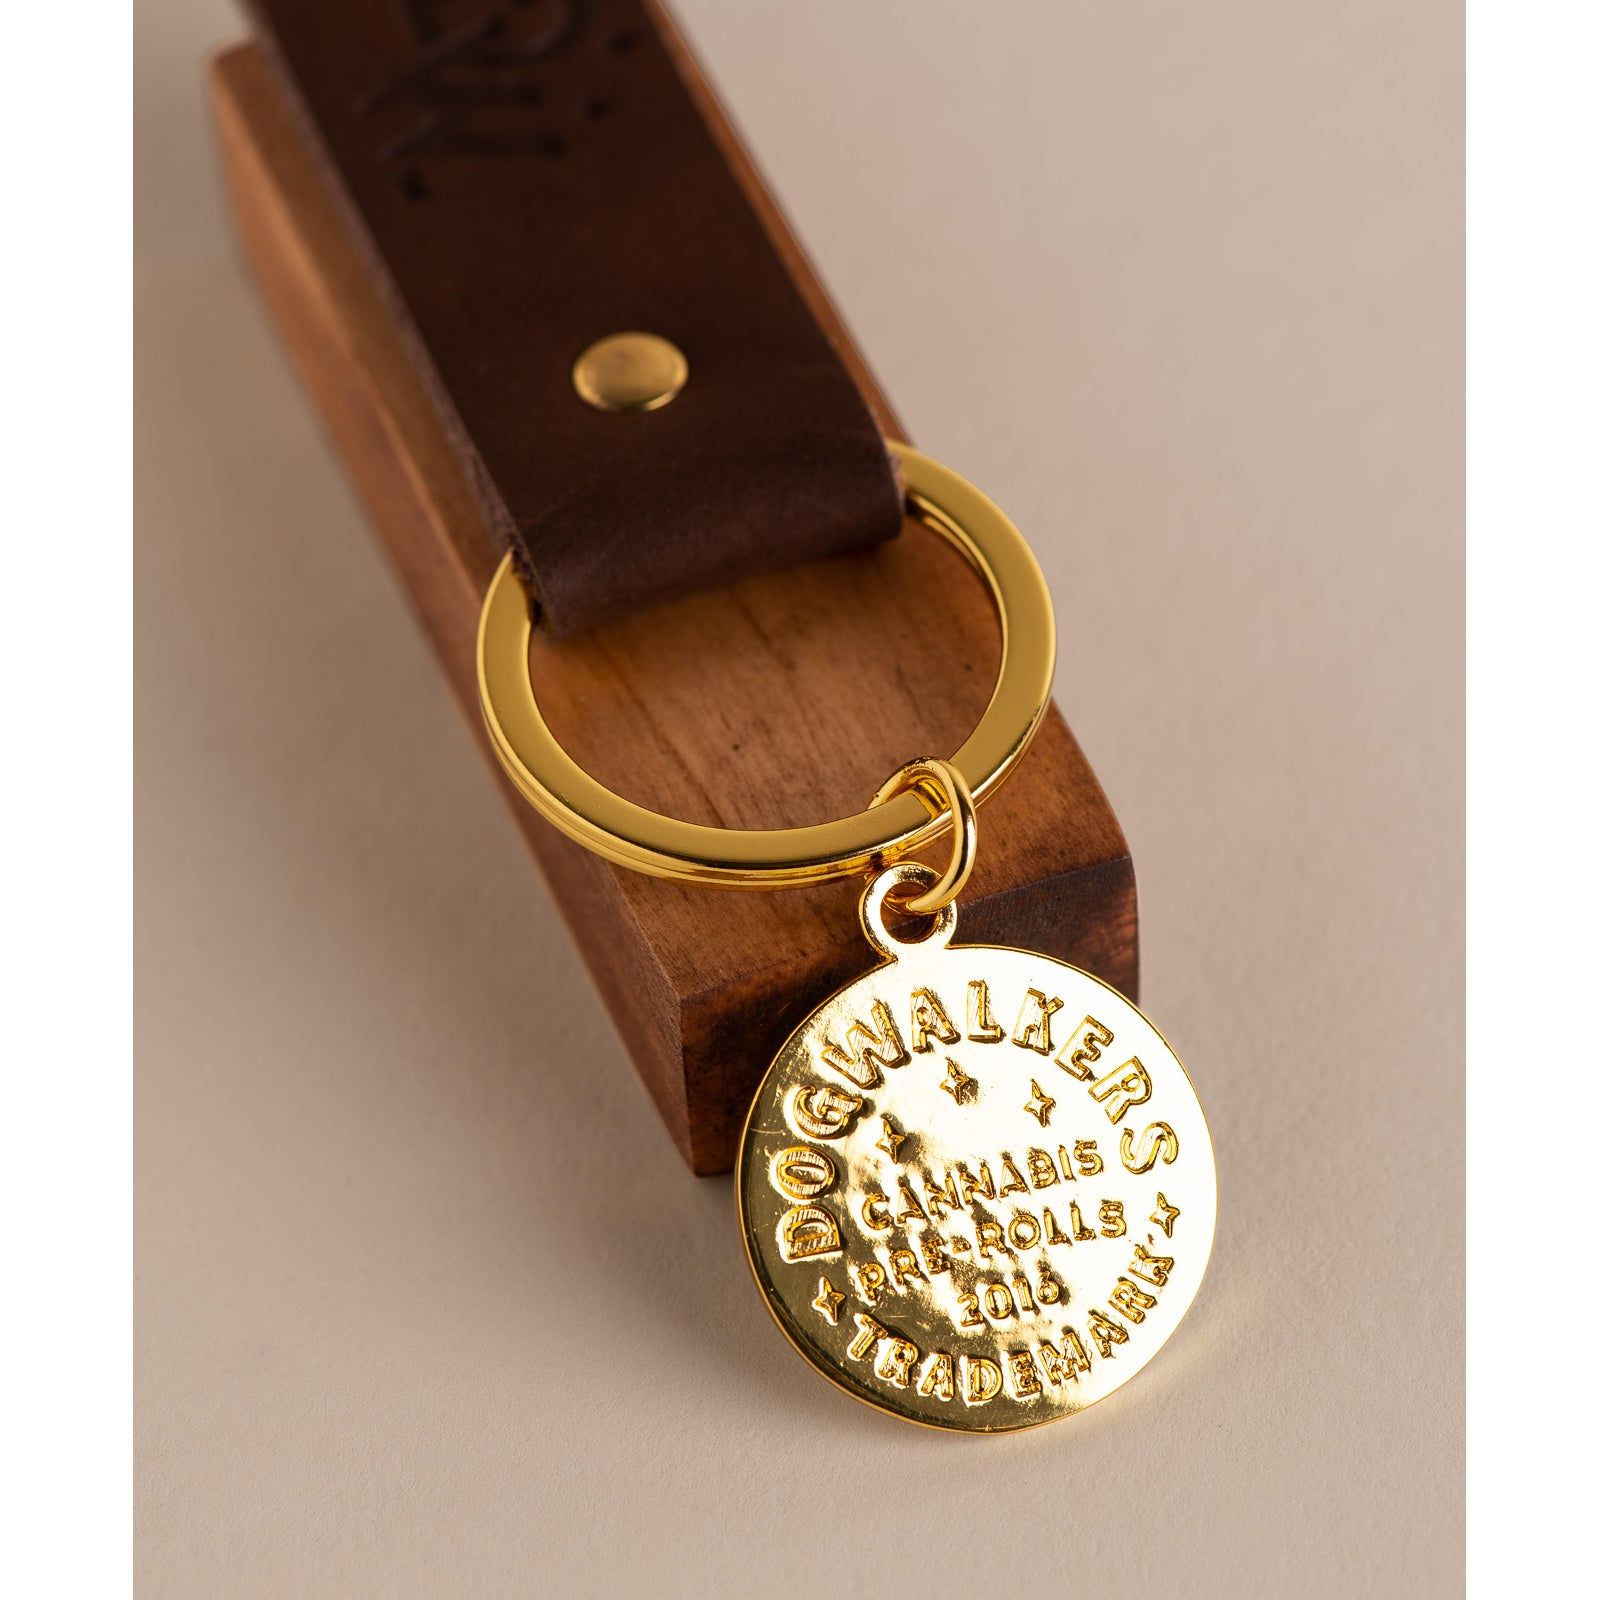 Dogwalkers Stamped Leather Key Chain